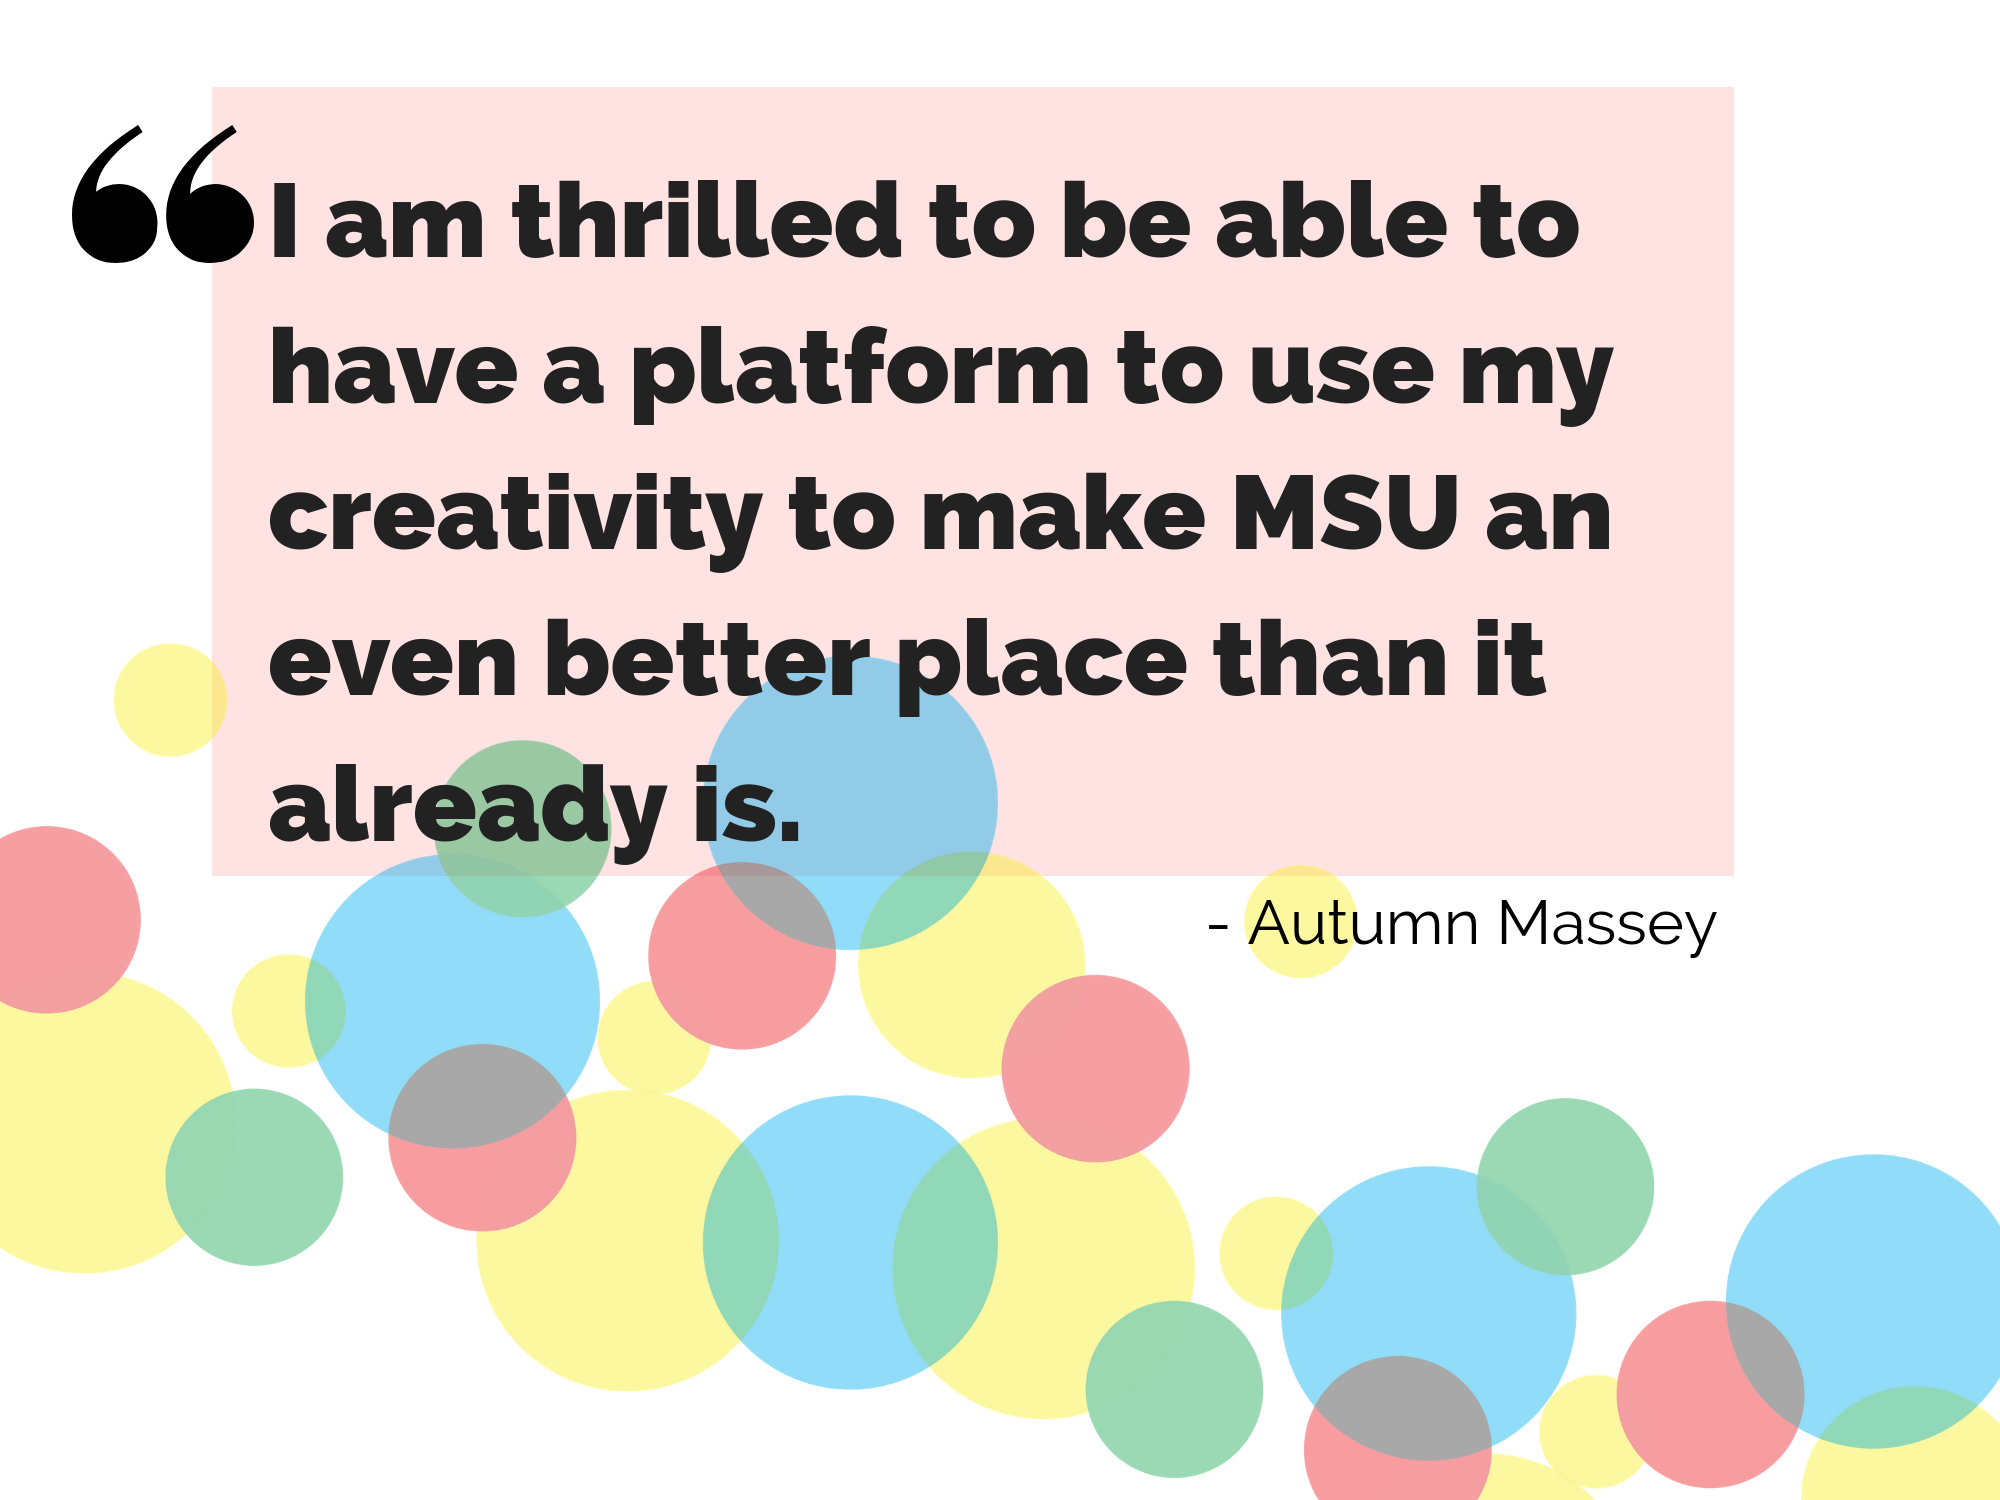 Hub template with quote from Autumn Massey.